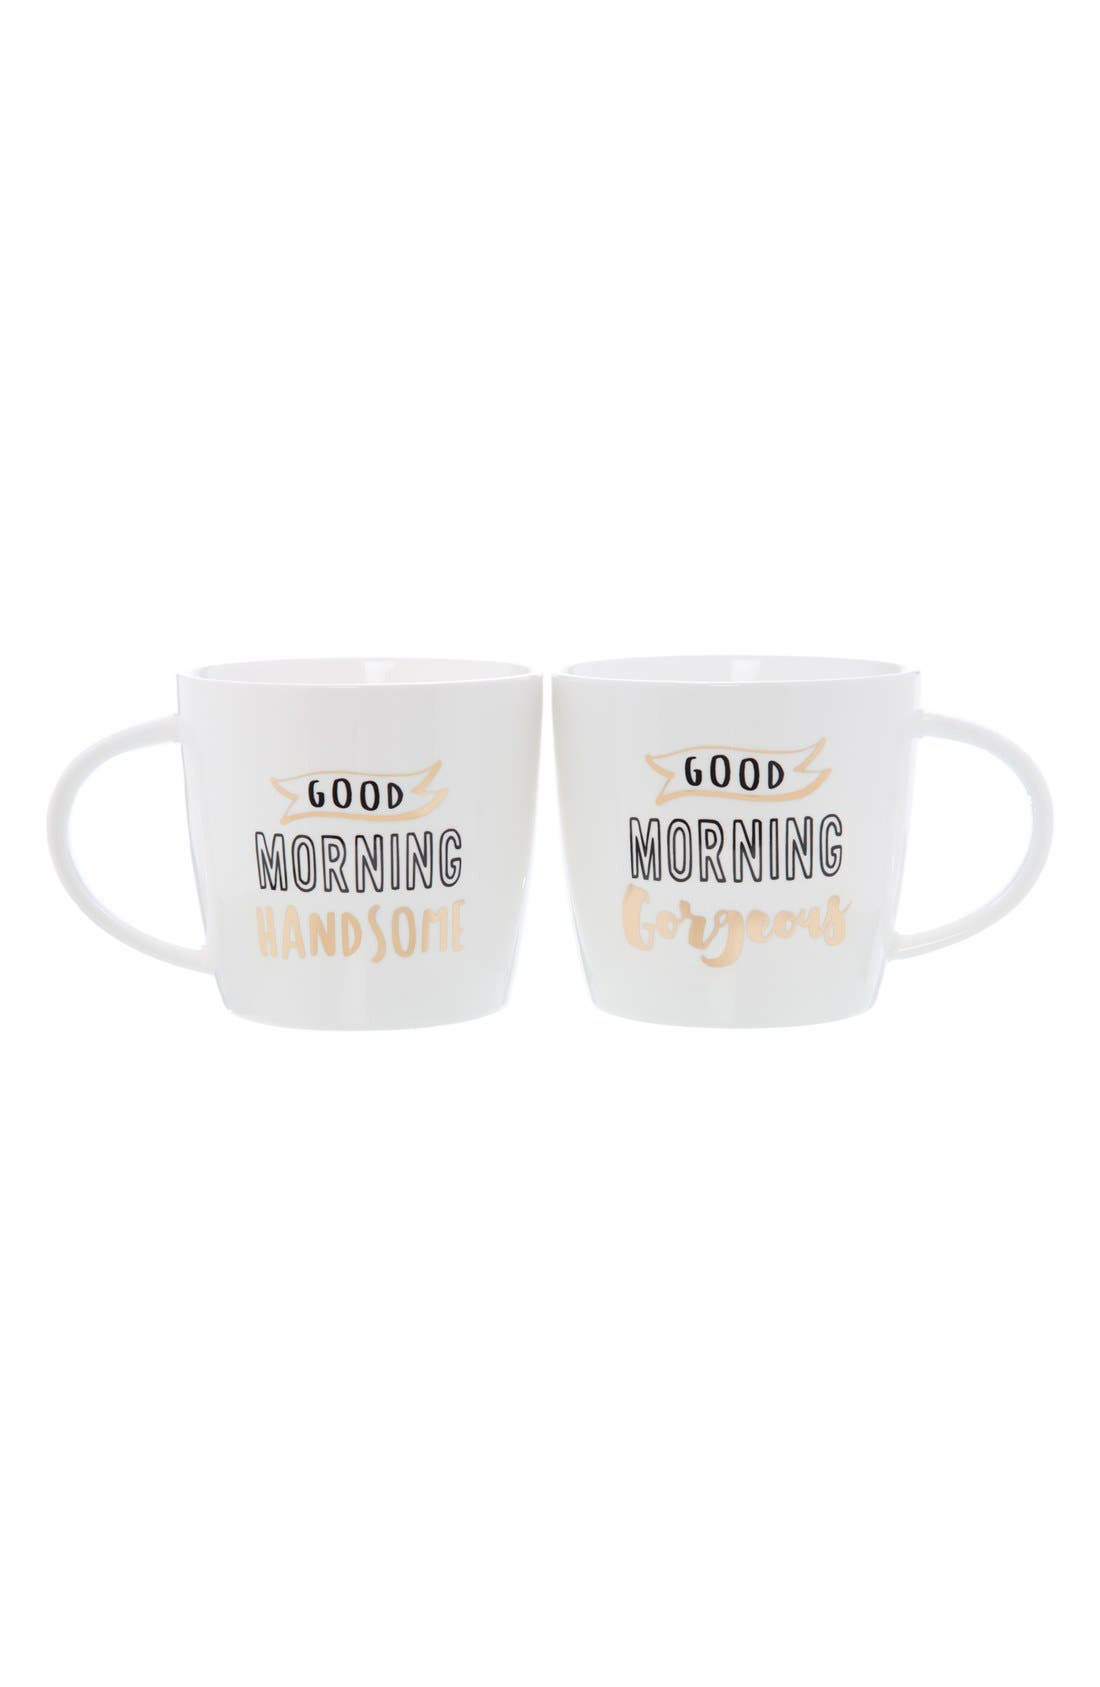 Alternate Image 1 Selected - Slant Collections 'Good Morning' Ceramic Coffee Mugs (Set of 2)